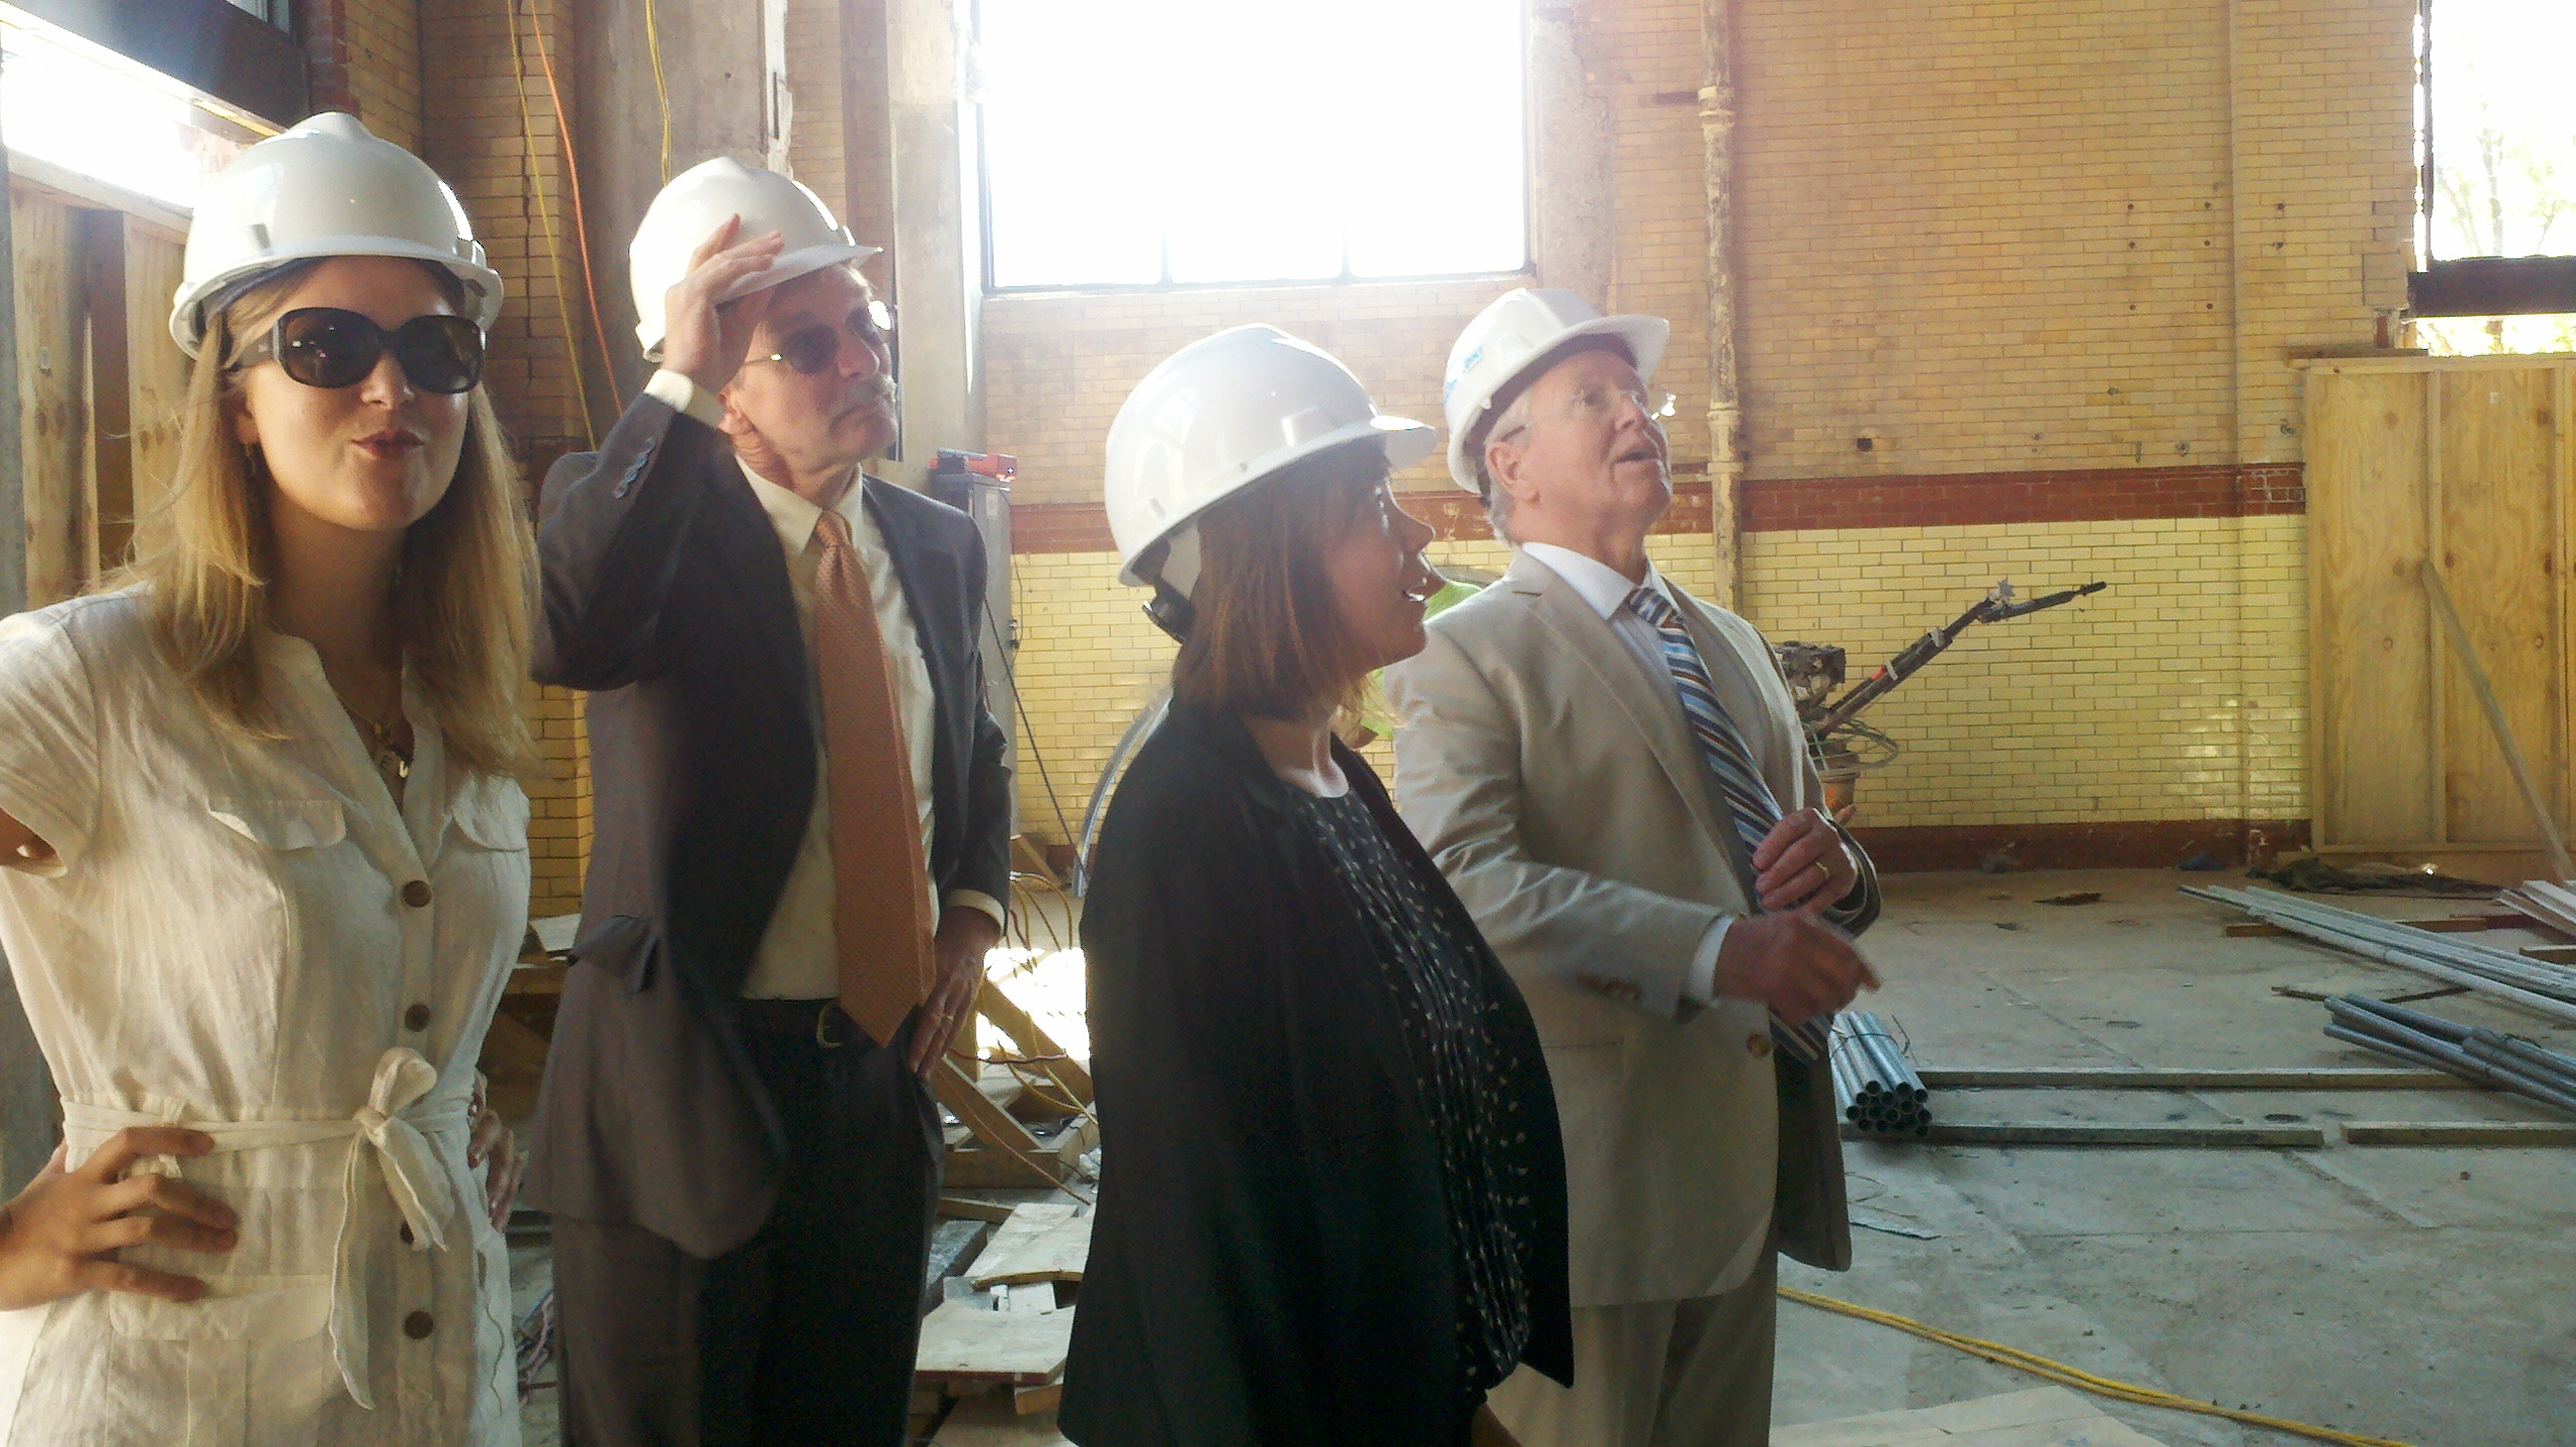 Philadelphia City Planning Commission Executive Director Gary Jastrzab - the man in back with his hand on his hard hat - joins DRWC Planners Lizzie Woods (next to Jastrzab) and Karen Thompson and DRWC President Tom Corcoran on a tour of the FringeArts building.